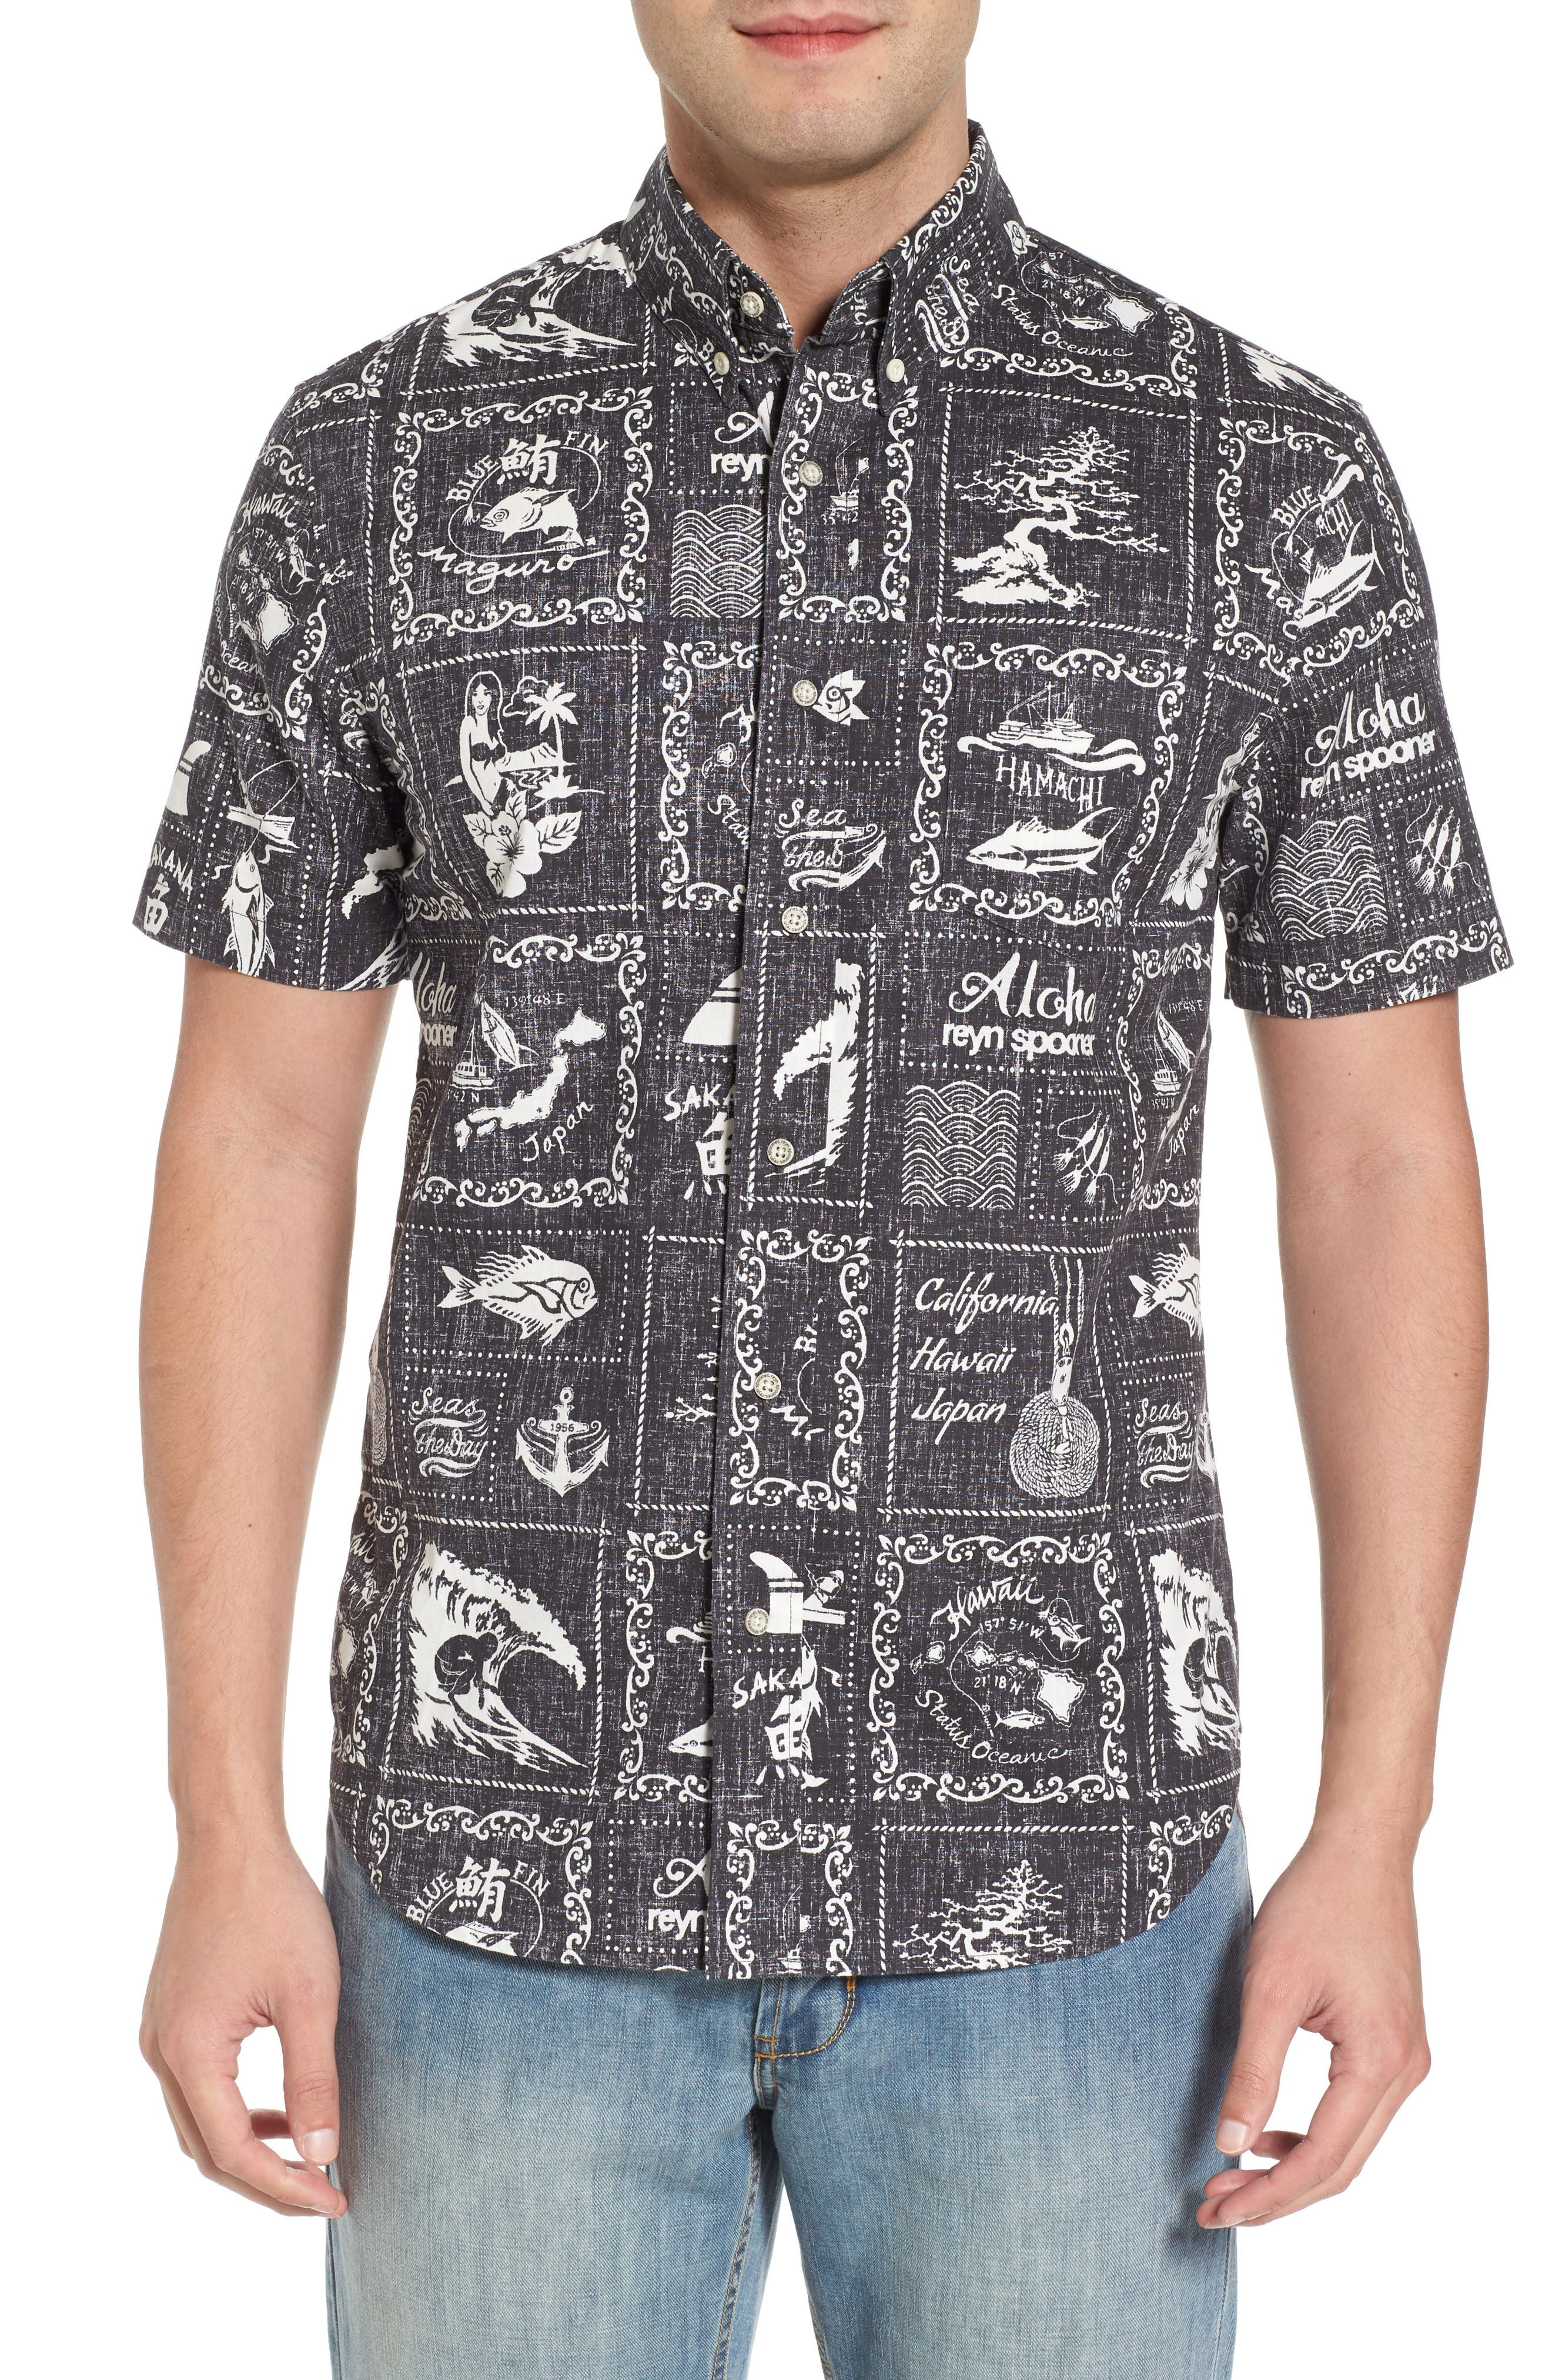 Stories from the East Regular Fit Sport Shirt,                         Main,                         color, 001